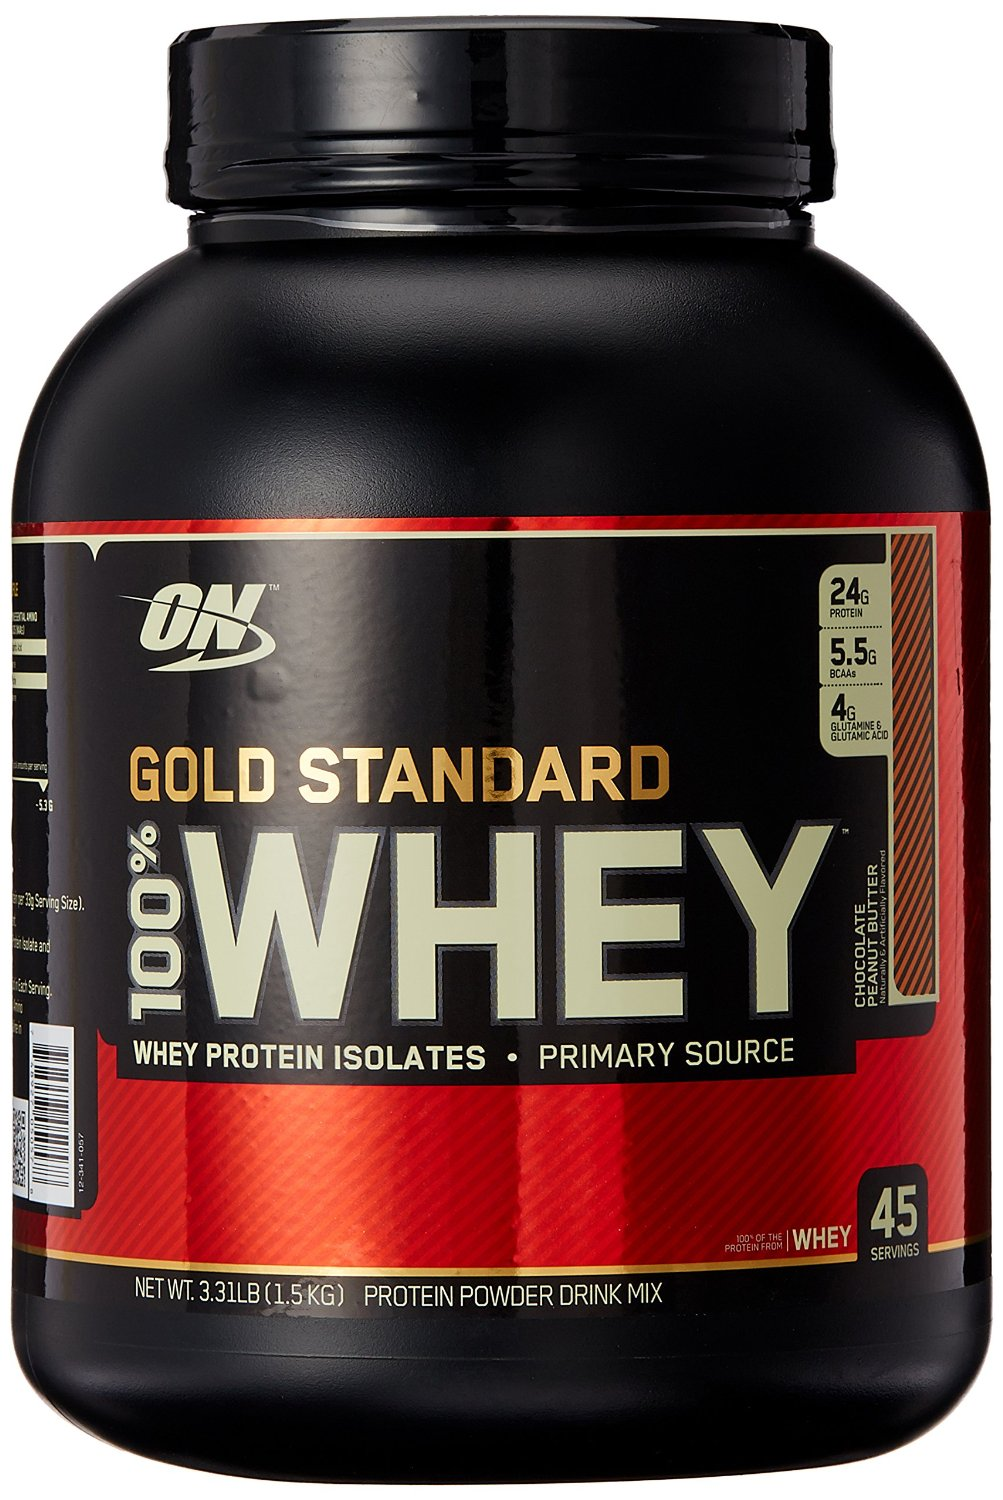 What is protein whey